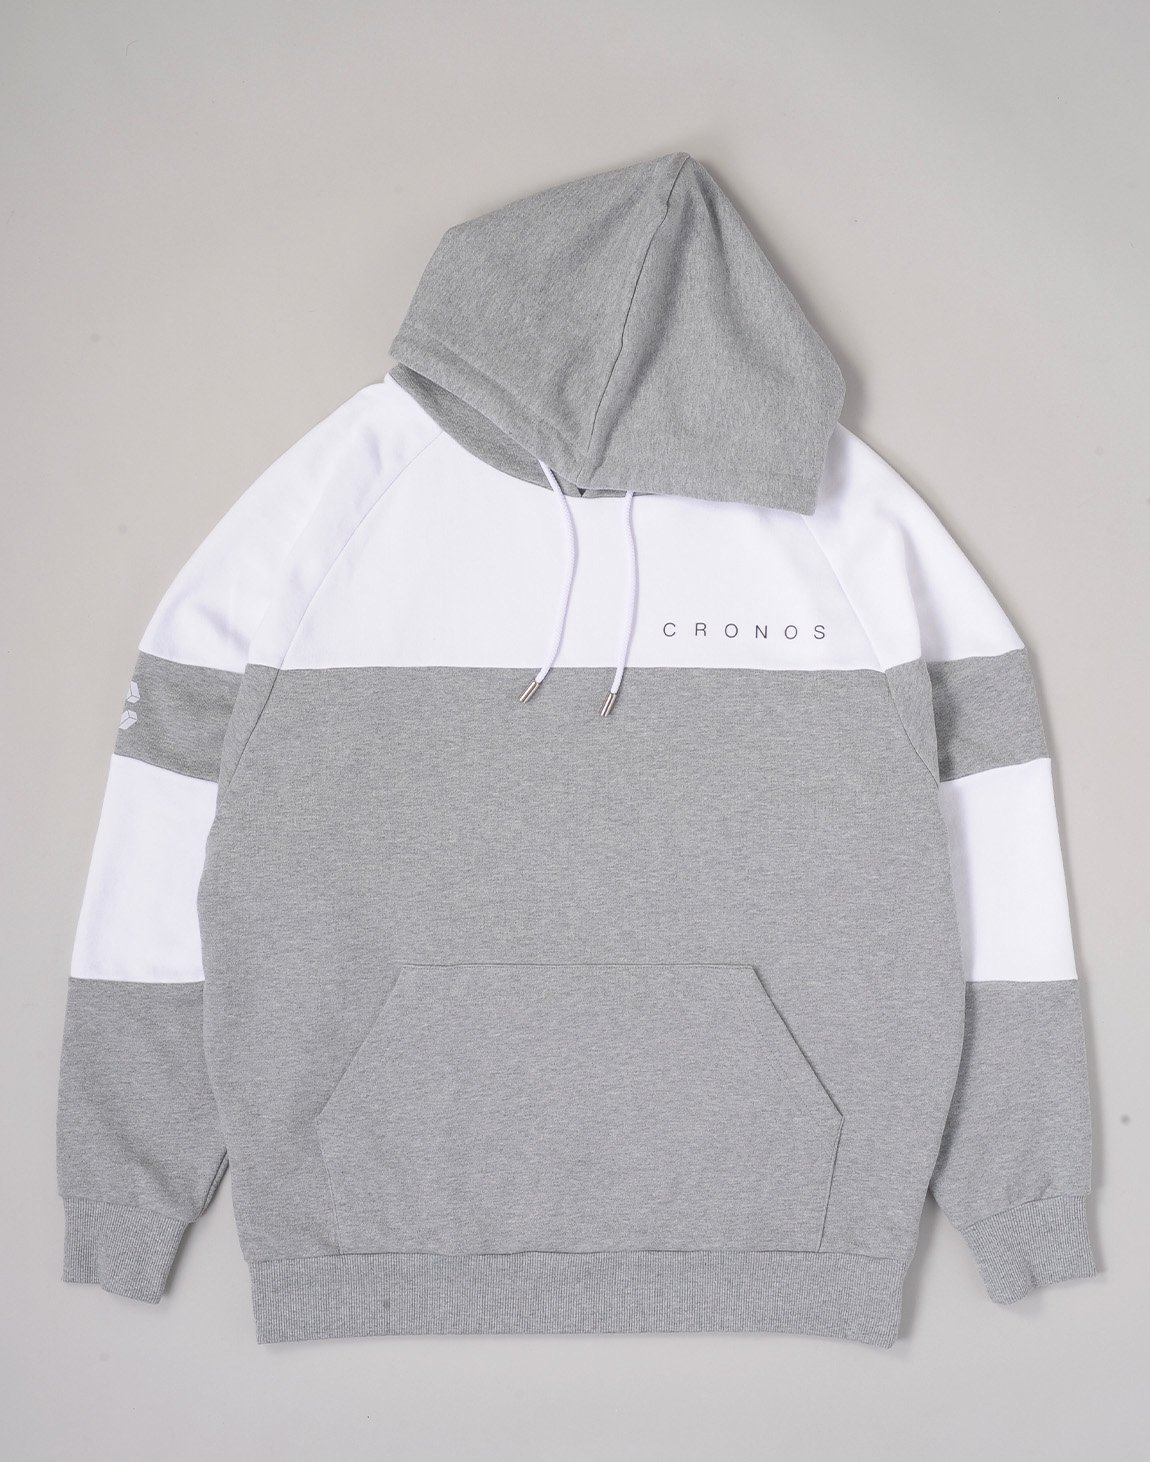 <img class='new_mark_img1' src='https://img.shop-pro.jp/img/new/icons1.gif' style='border:none;display:inline;margin:0px;padding:0px;width:auto;' />CRONOS CUT BACK BASIC HOODIE【GRAYxWHITE】